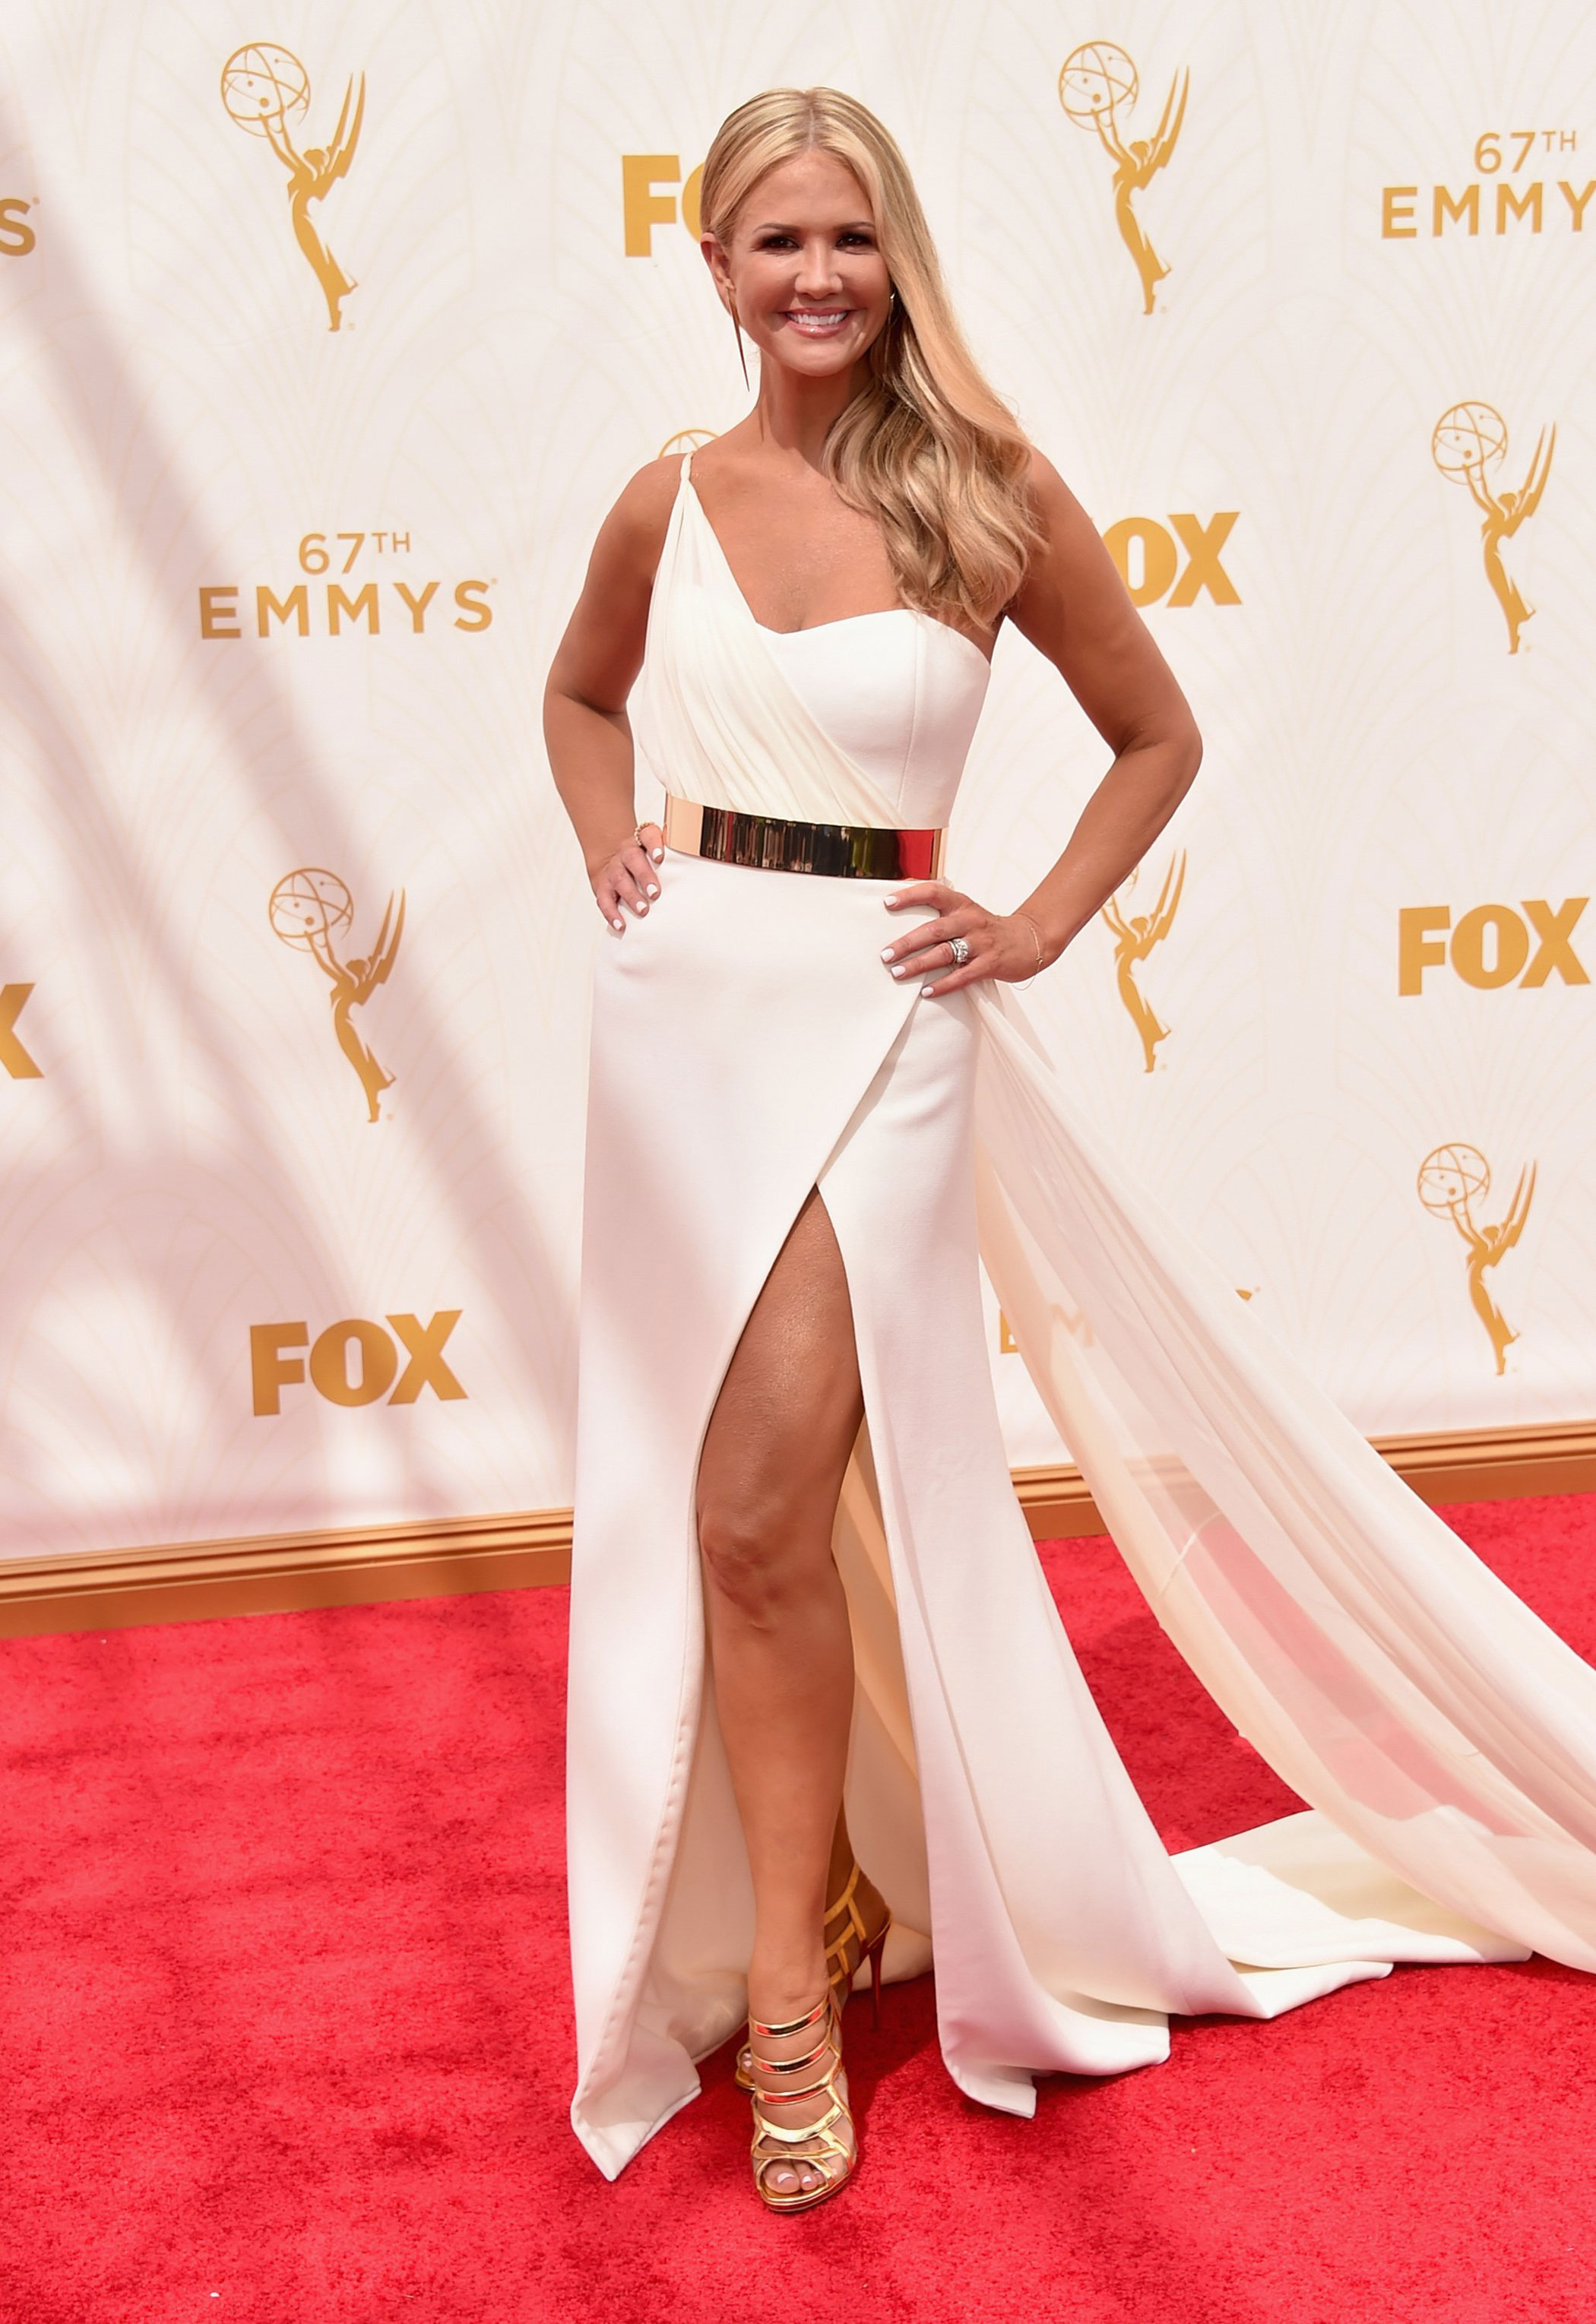 Nancy O'Dell at the 67th Emmy Award on Sept. 20, 2015 in Los Angeles.